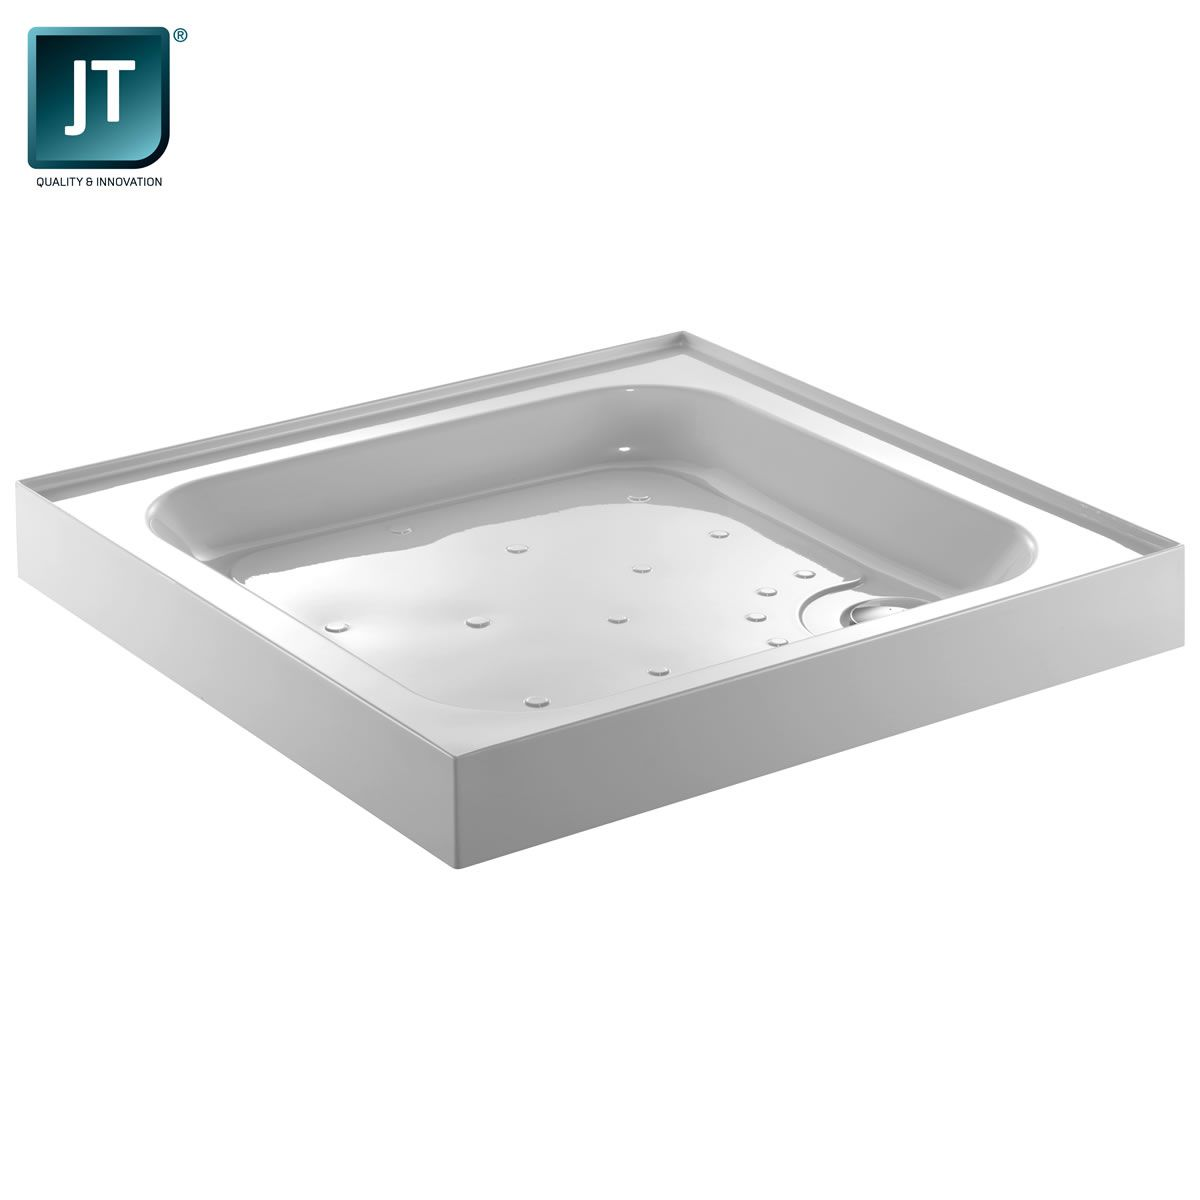 Just Trays Ultracast Square Upstand Shower Tray Uk Bathrooms